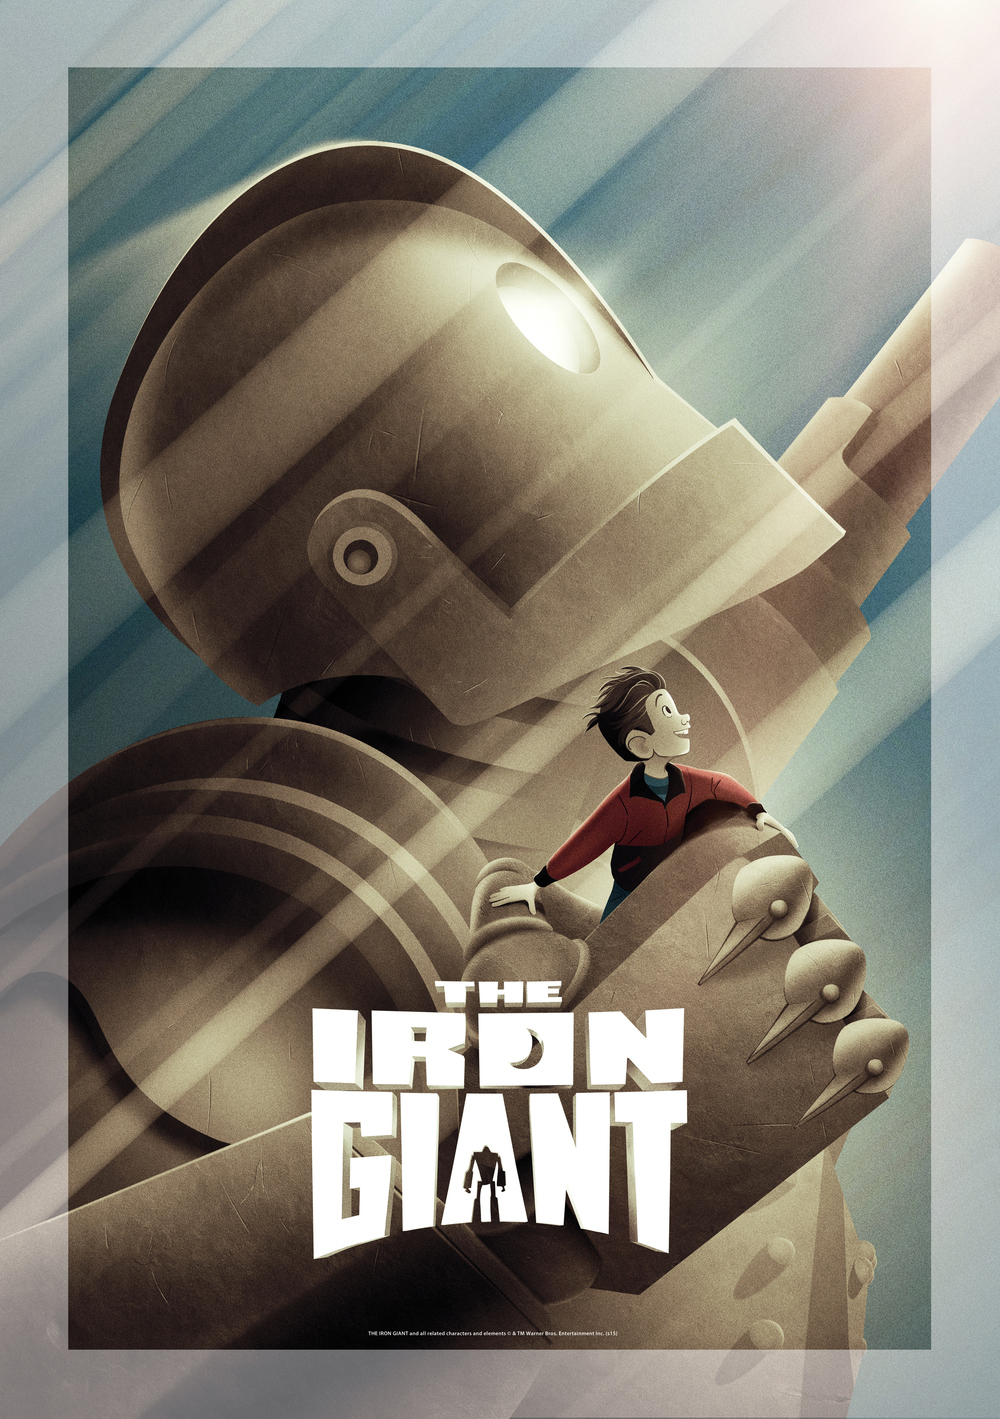 poster-art-for-the-iron-giant-created-by-brad-bird-and-jeff-granito